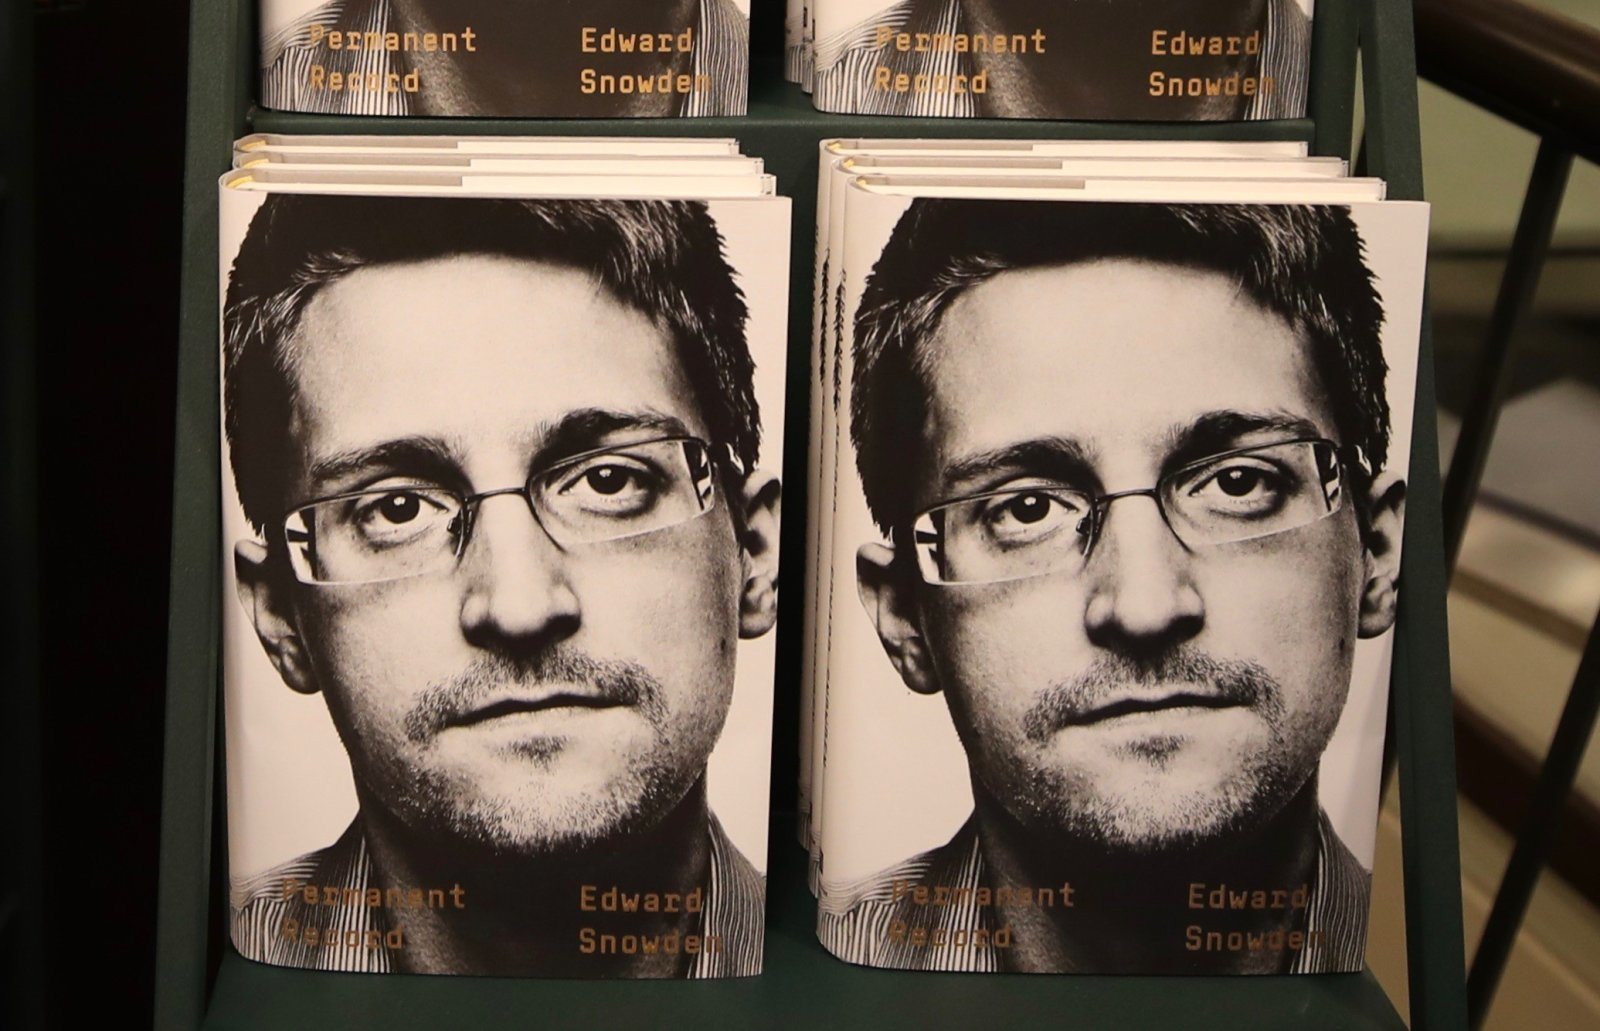 U.S Files Lawsuit Against Edward Snowden for Publishing his Book